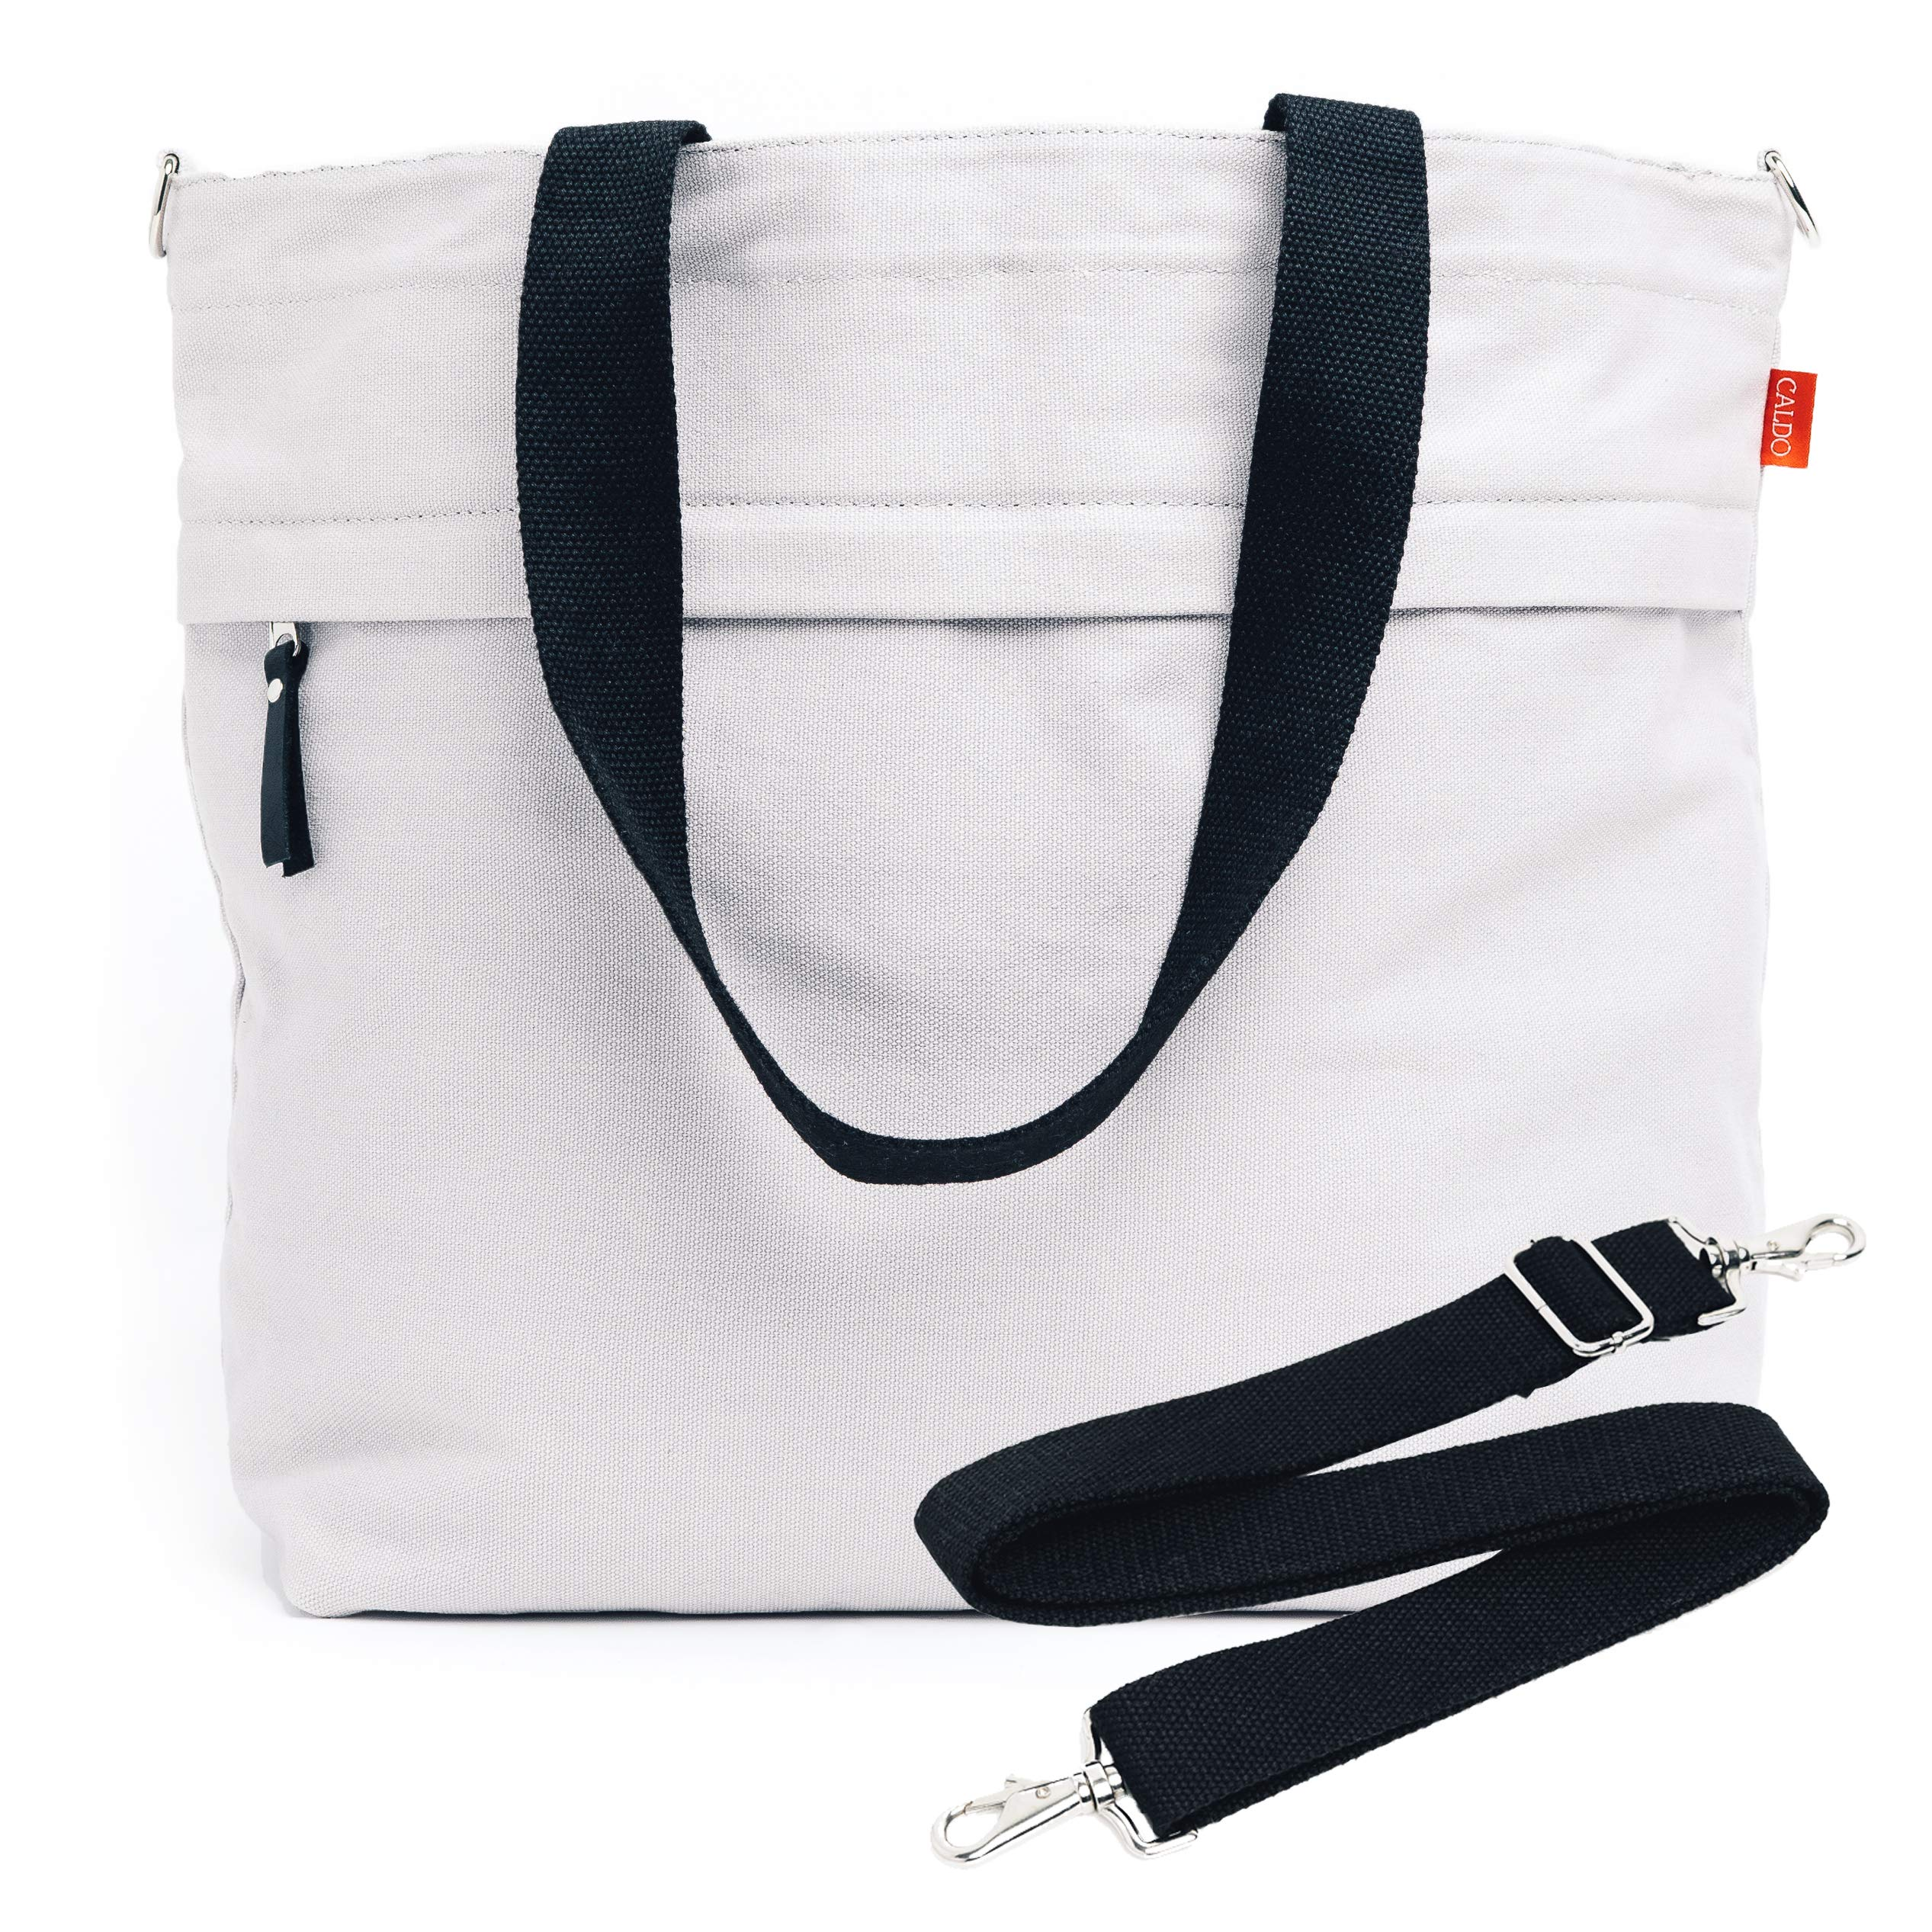 Caldo Canvas Market Tote - Large Travel Bag with Outer Zipper Pocket and Adjustable Shoulder Strap (Previously Abbot Fjord) (Pewter)